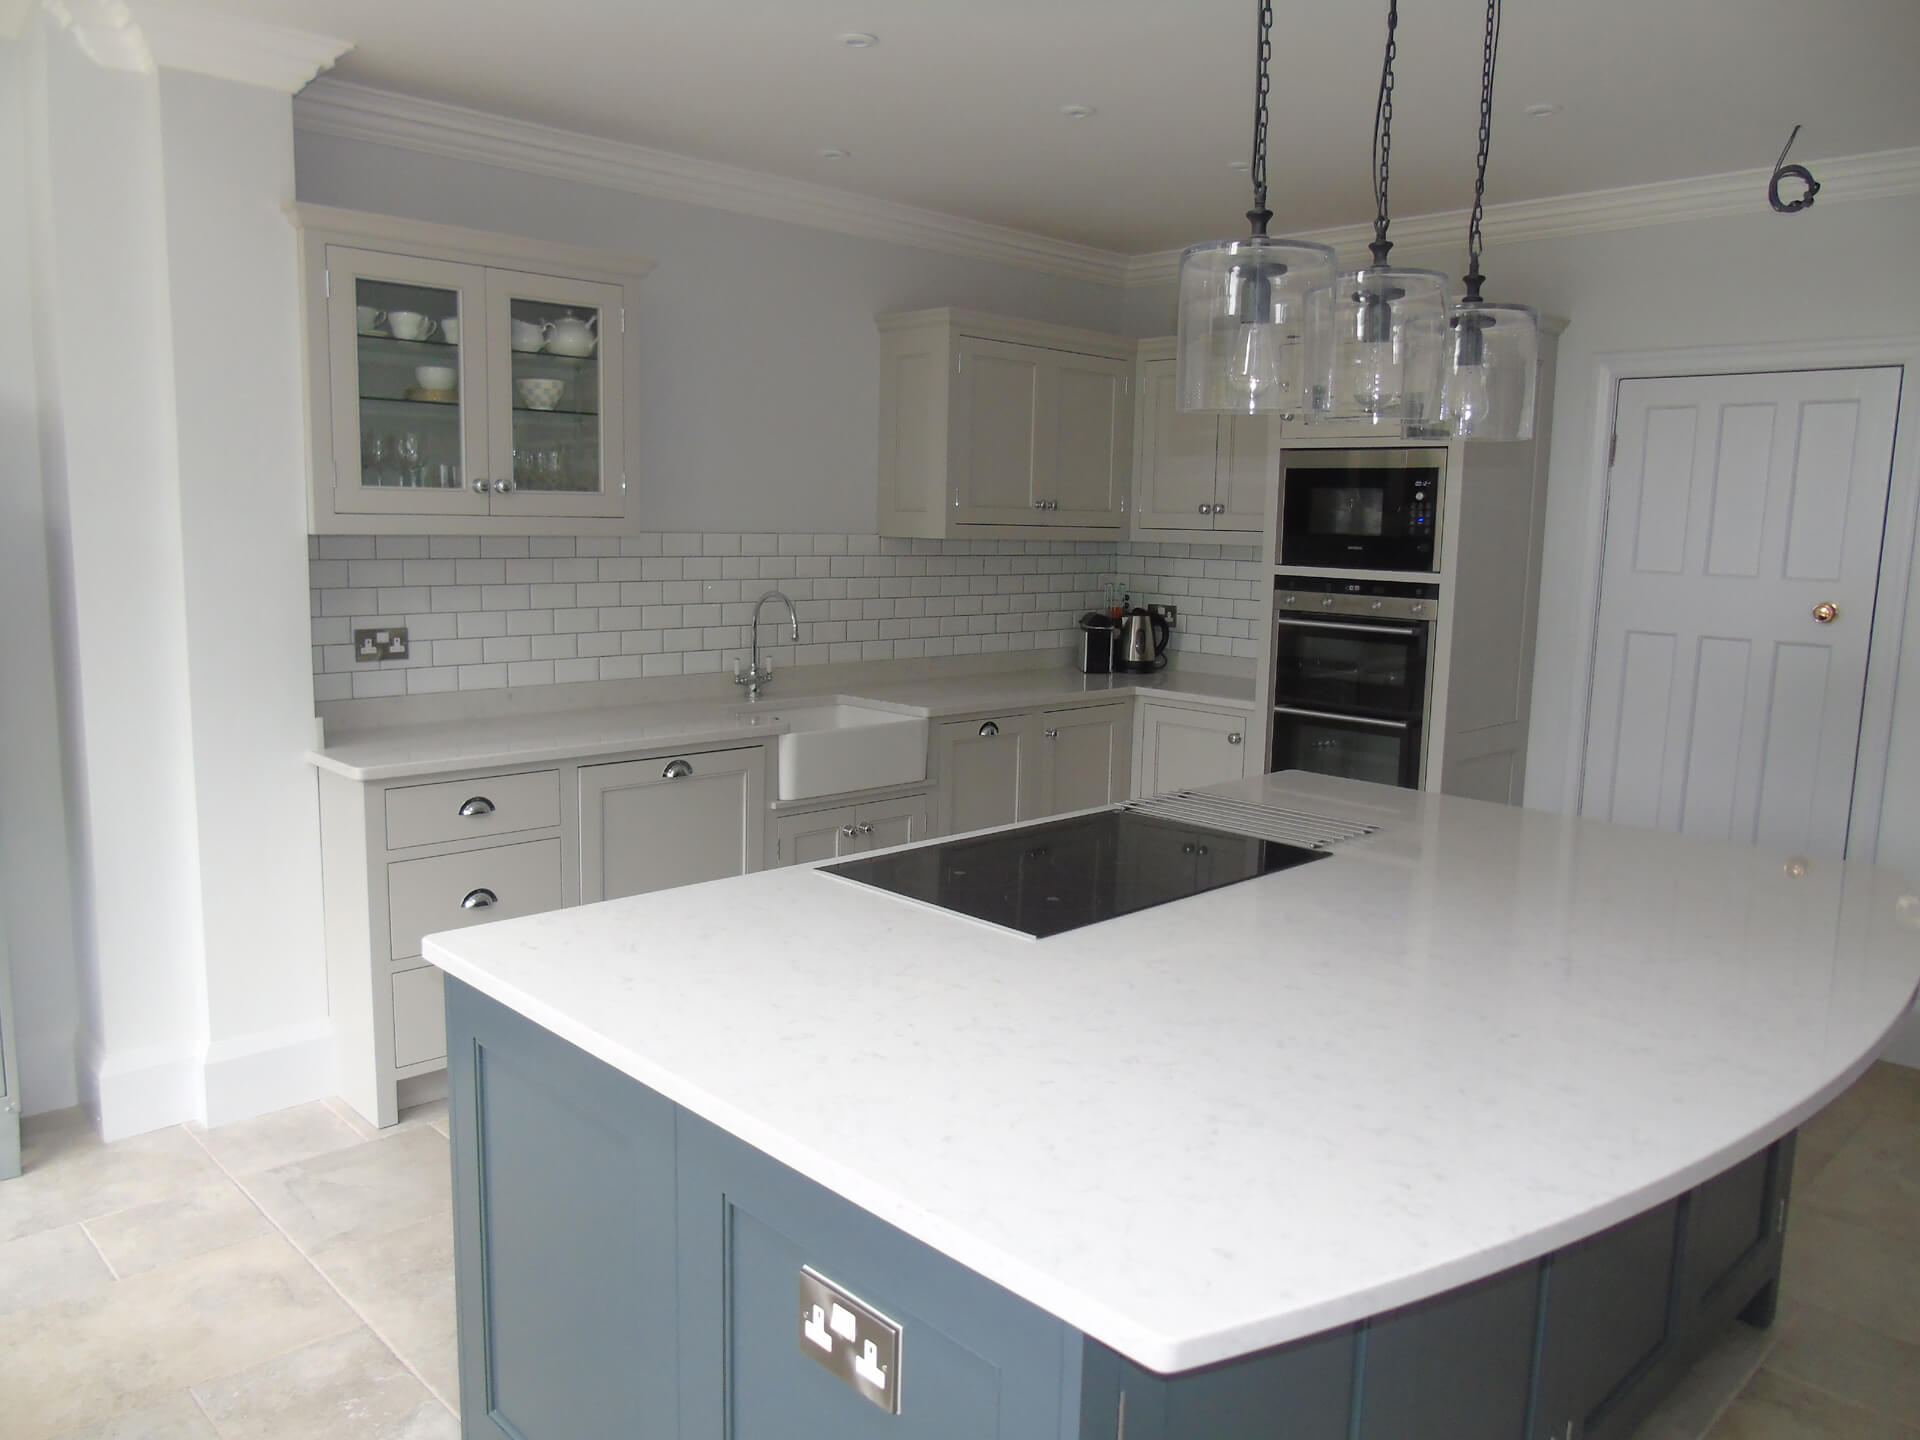 Handmade Georgian Beaded Door Kitchen - Solihull